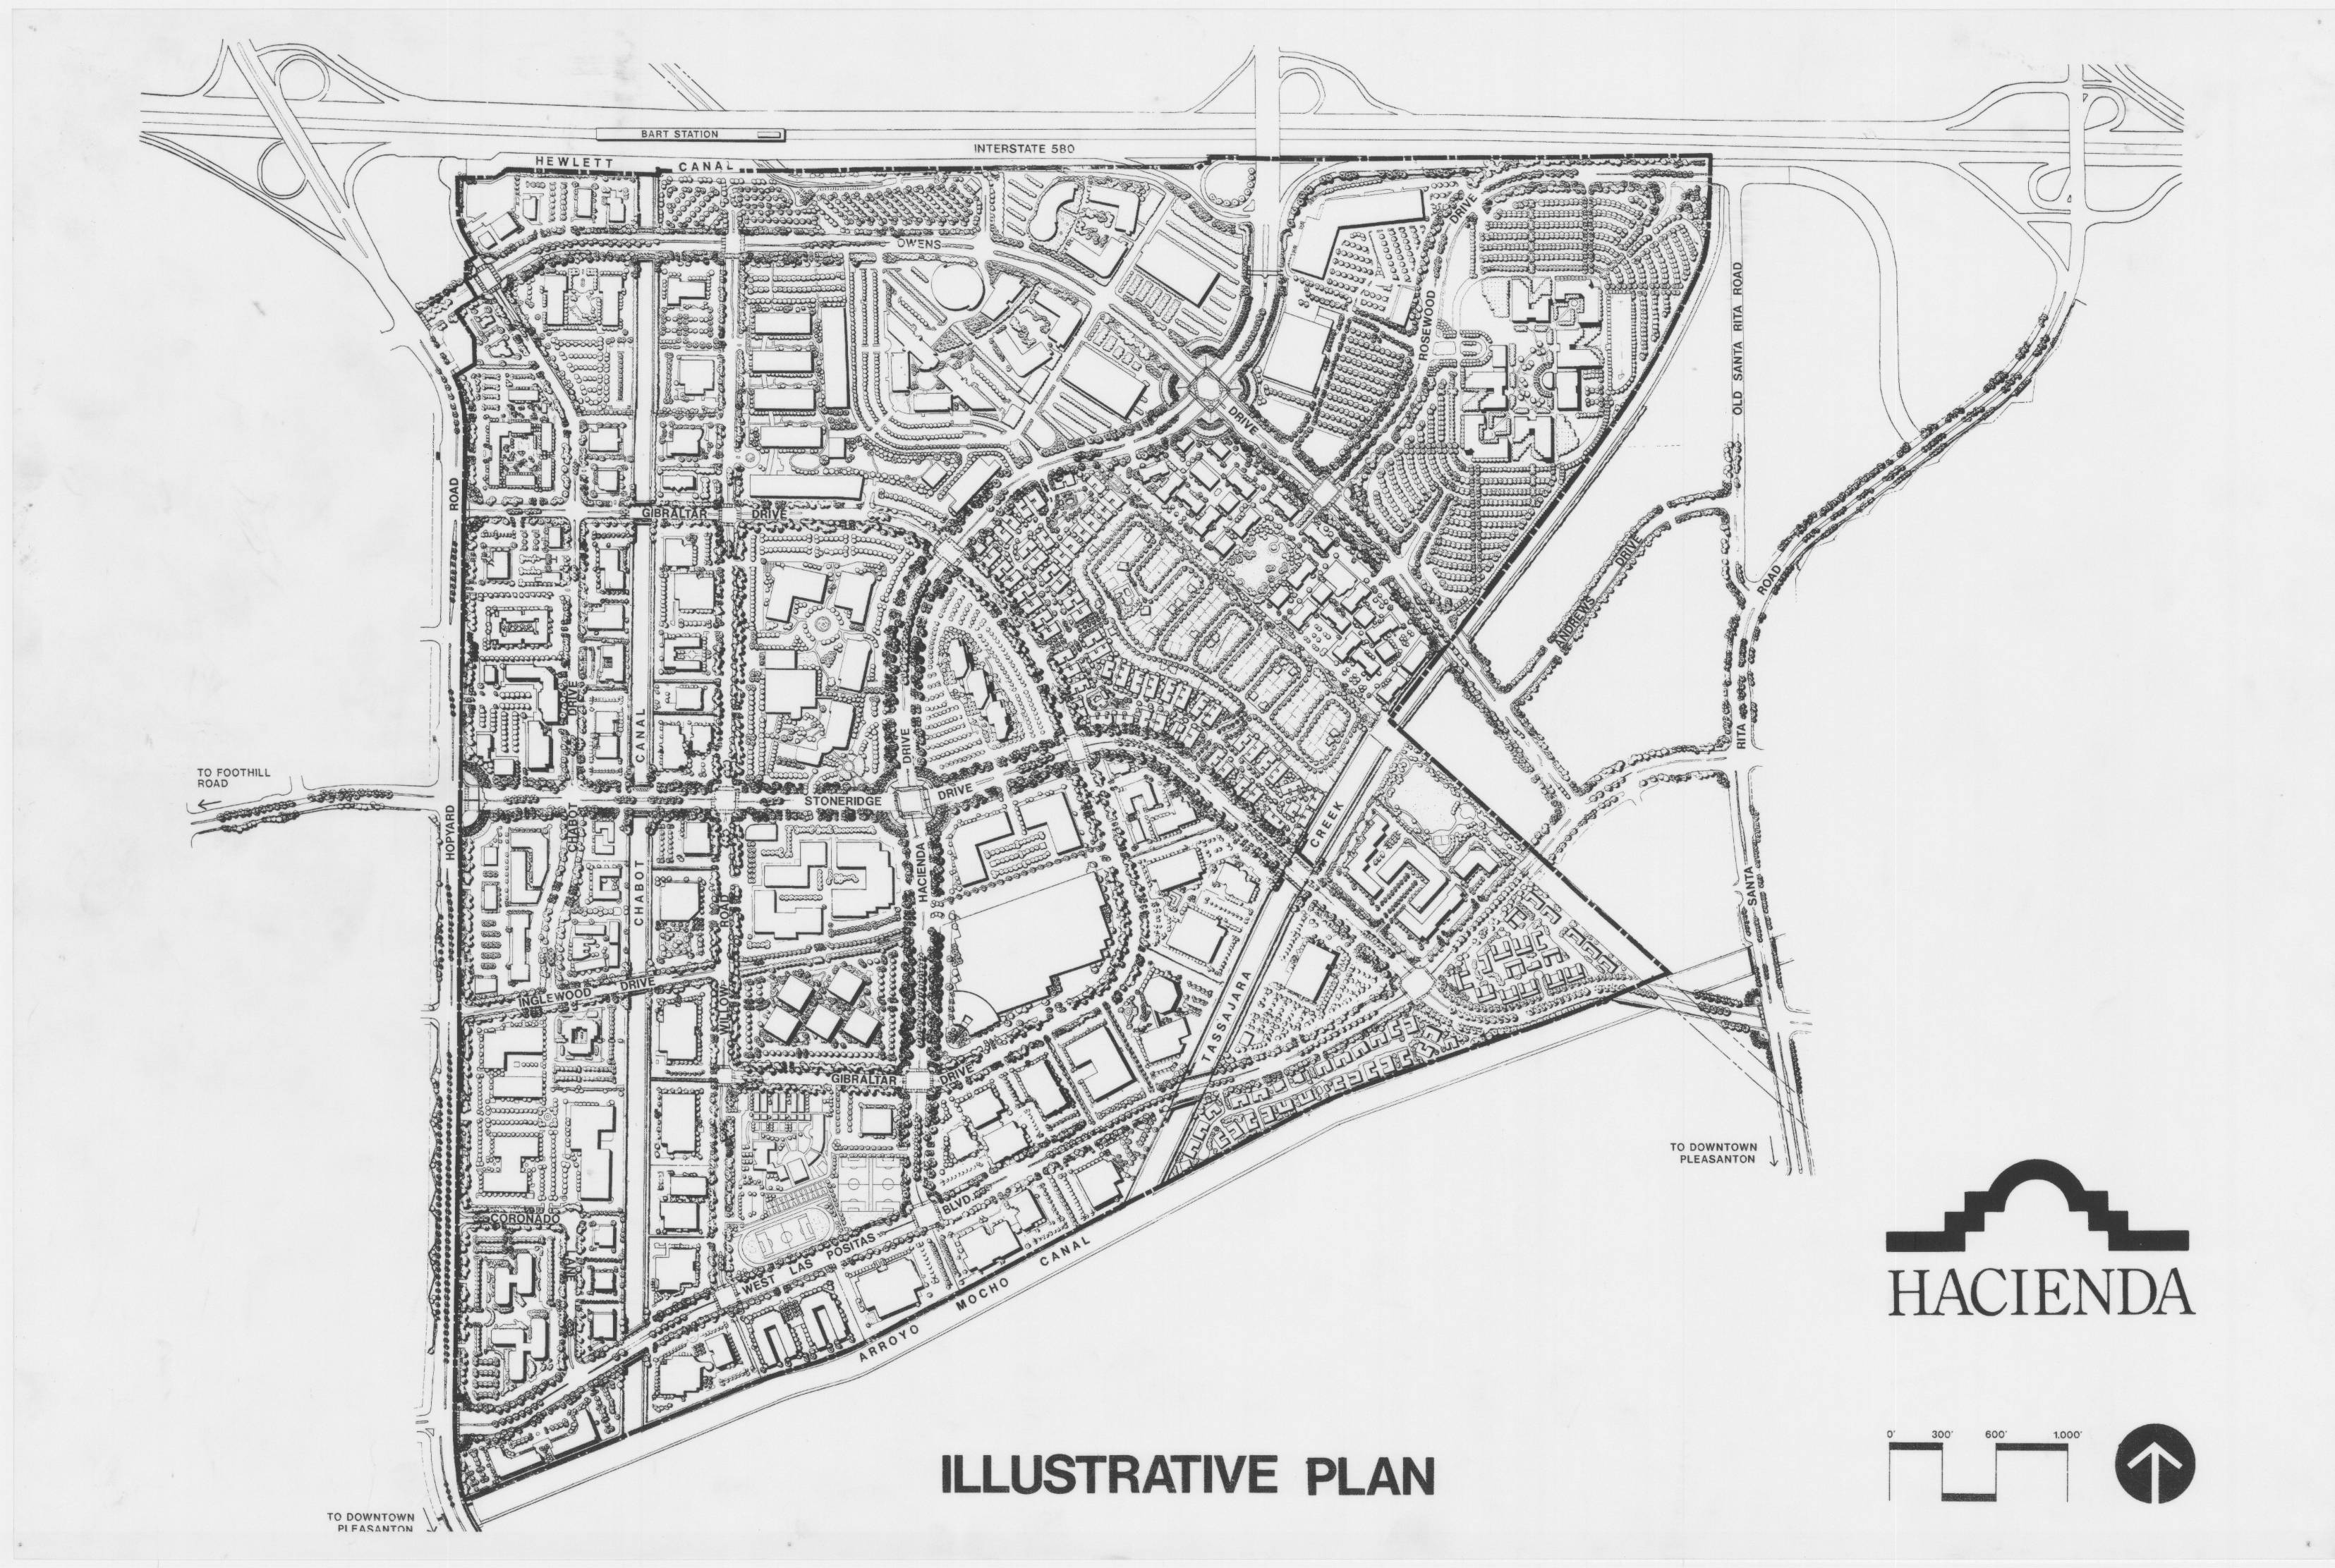 Illustrative Master Plan, 780 acres